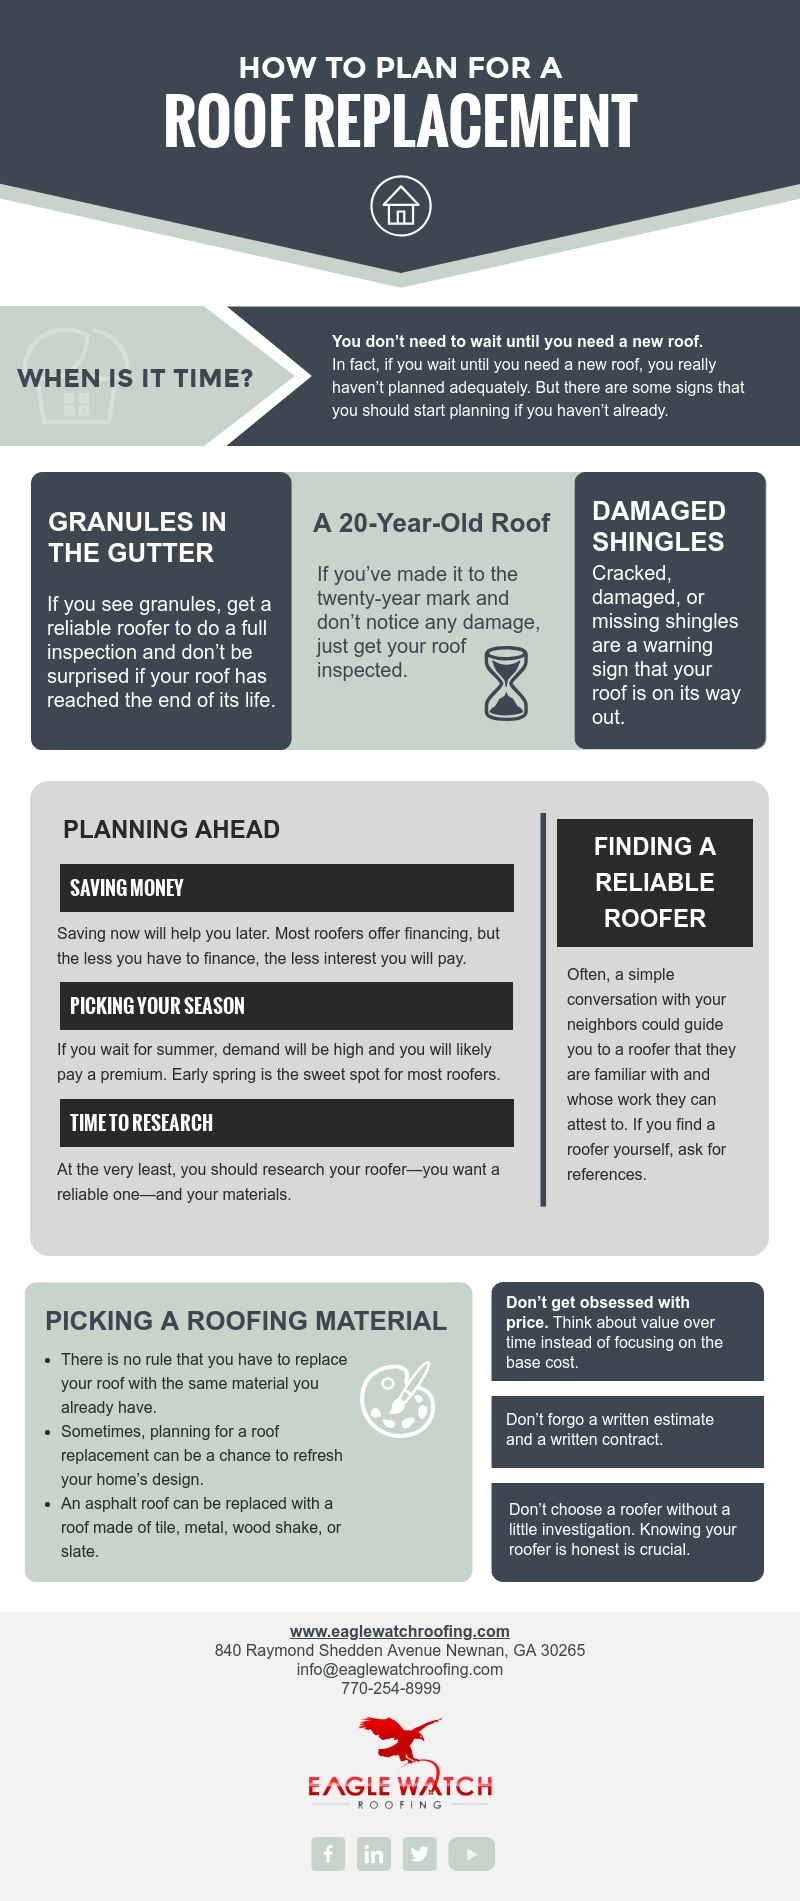 How to Plan for a Roof Replacement [infographic]